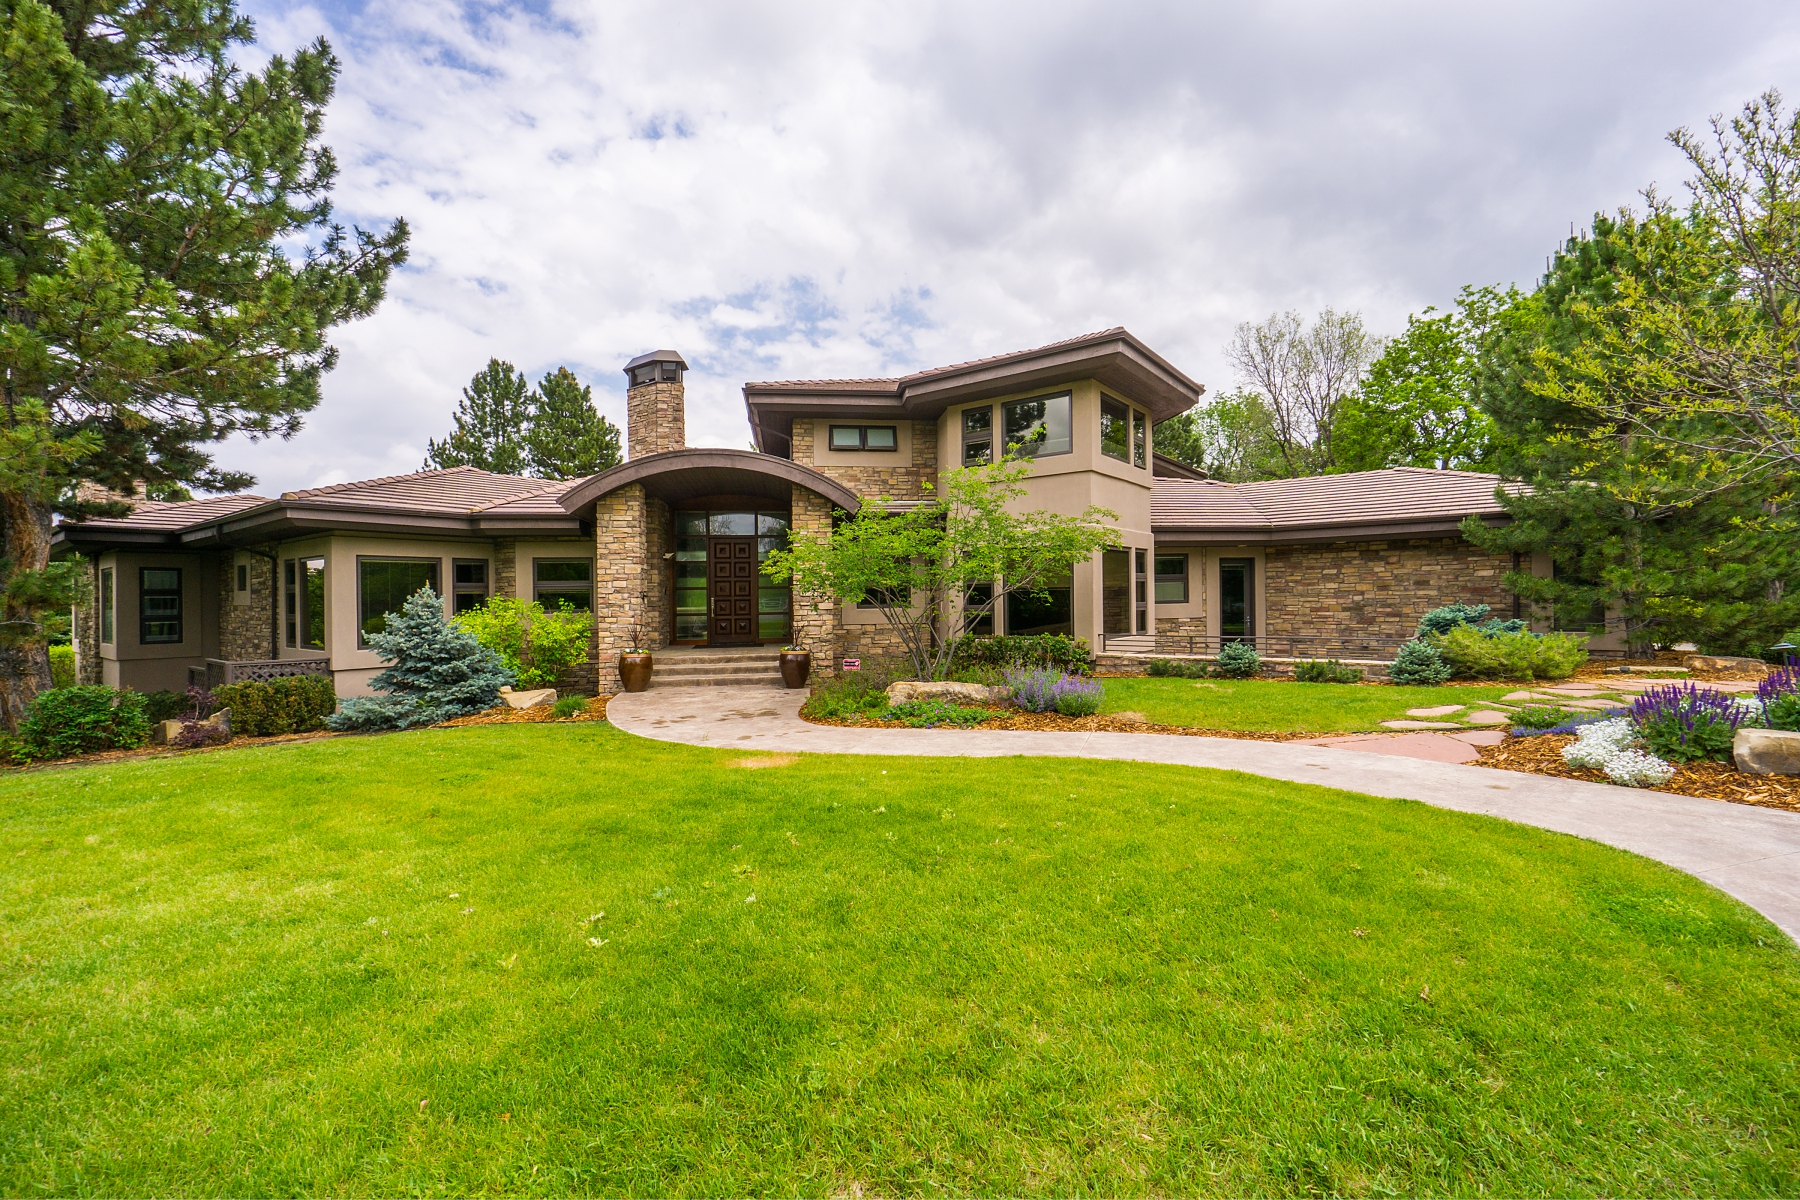 Casa Unifamiliar por un Venta en A one-of-a-kind masterpiece with a mild contemporary flare 1953 Crestridge Drive Greenwood Village, Colorado 80121 Estados Unidos